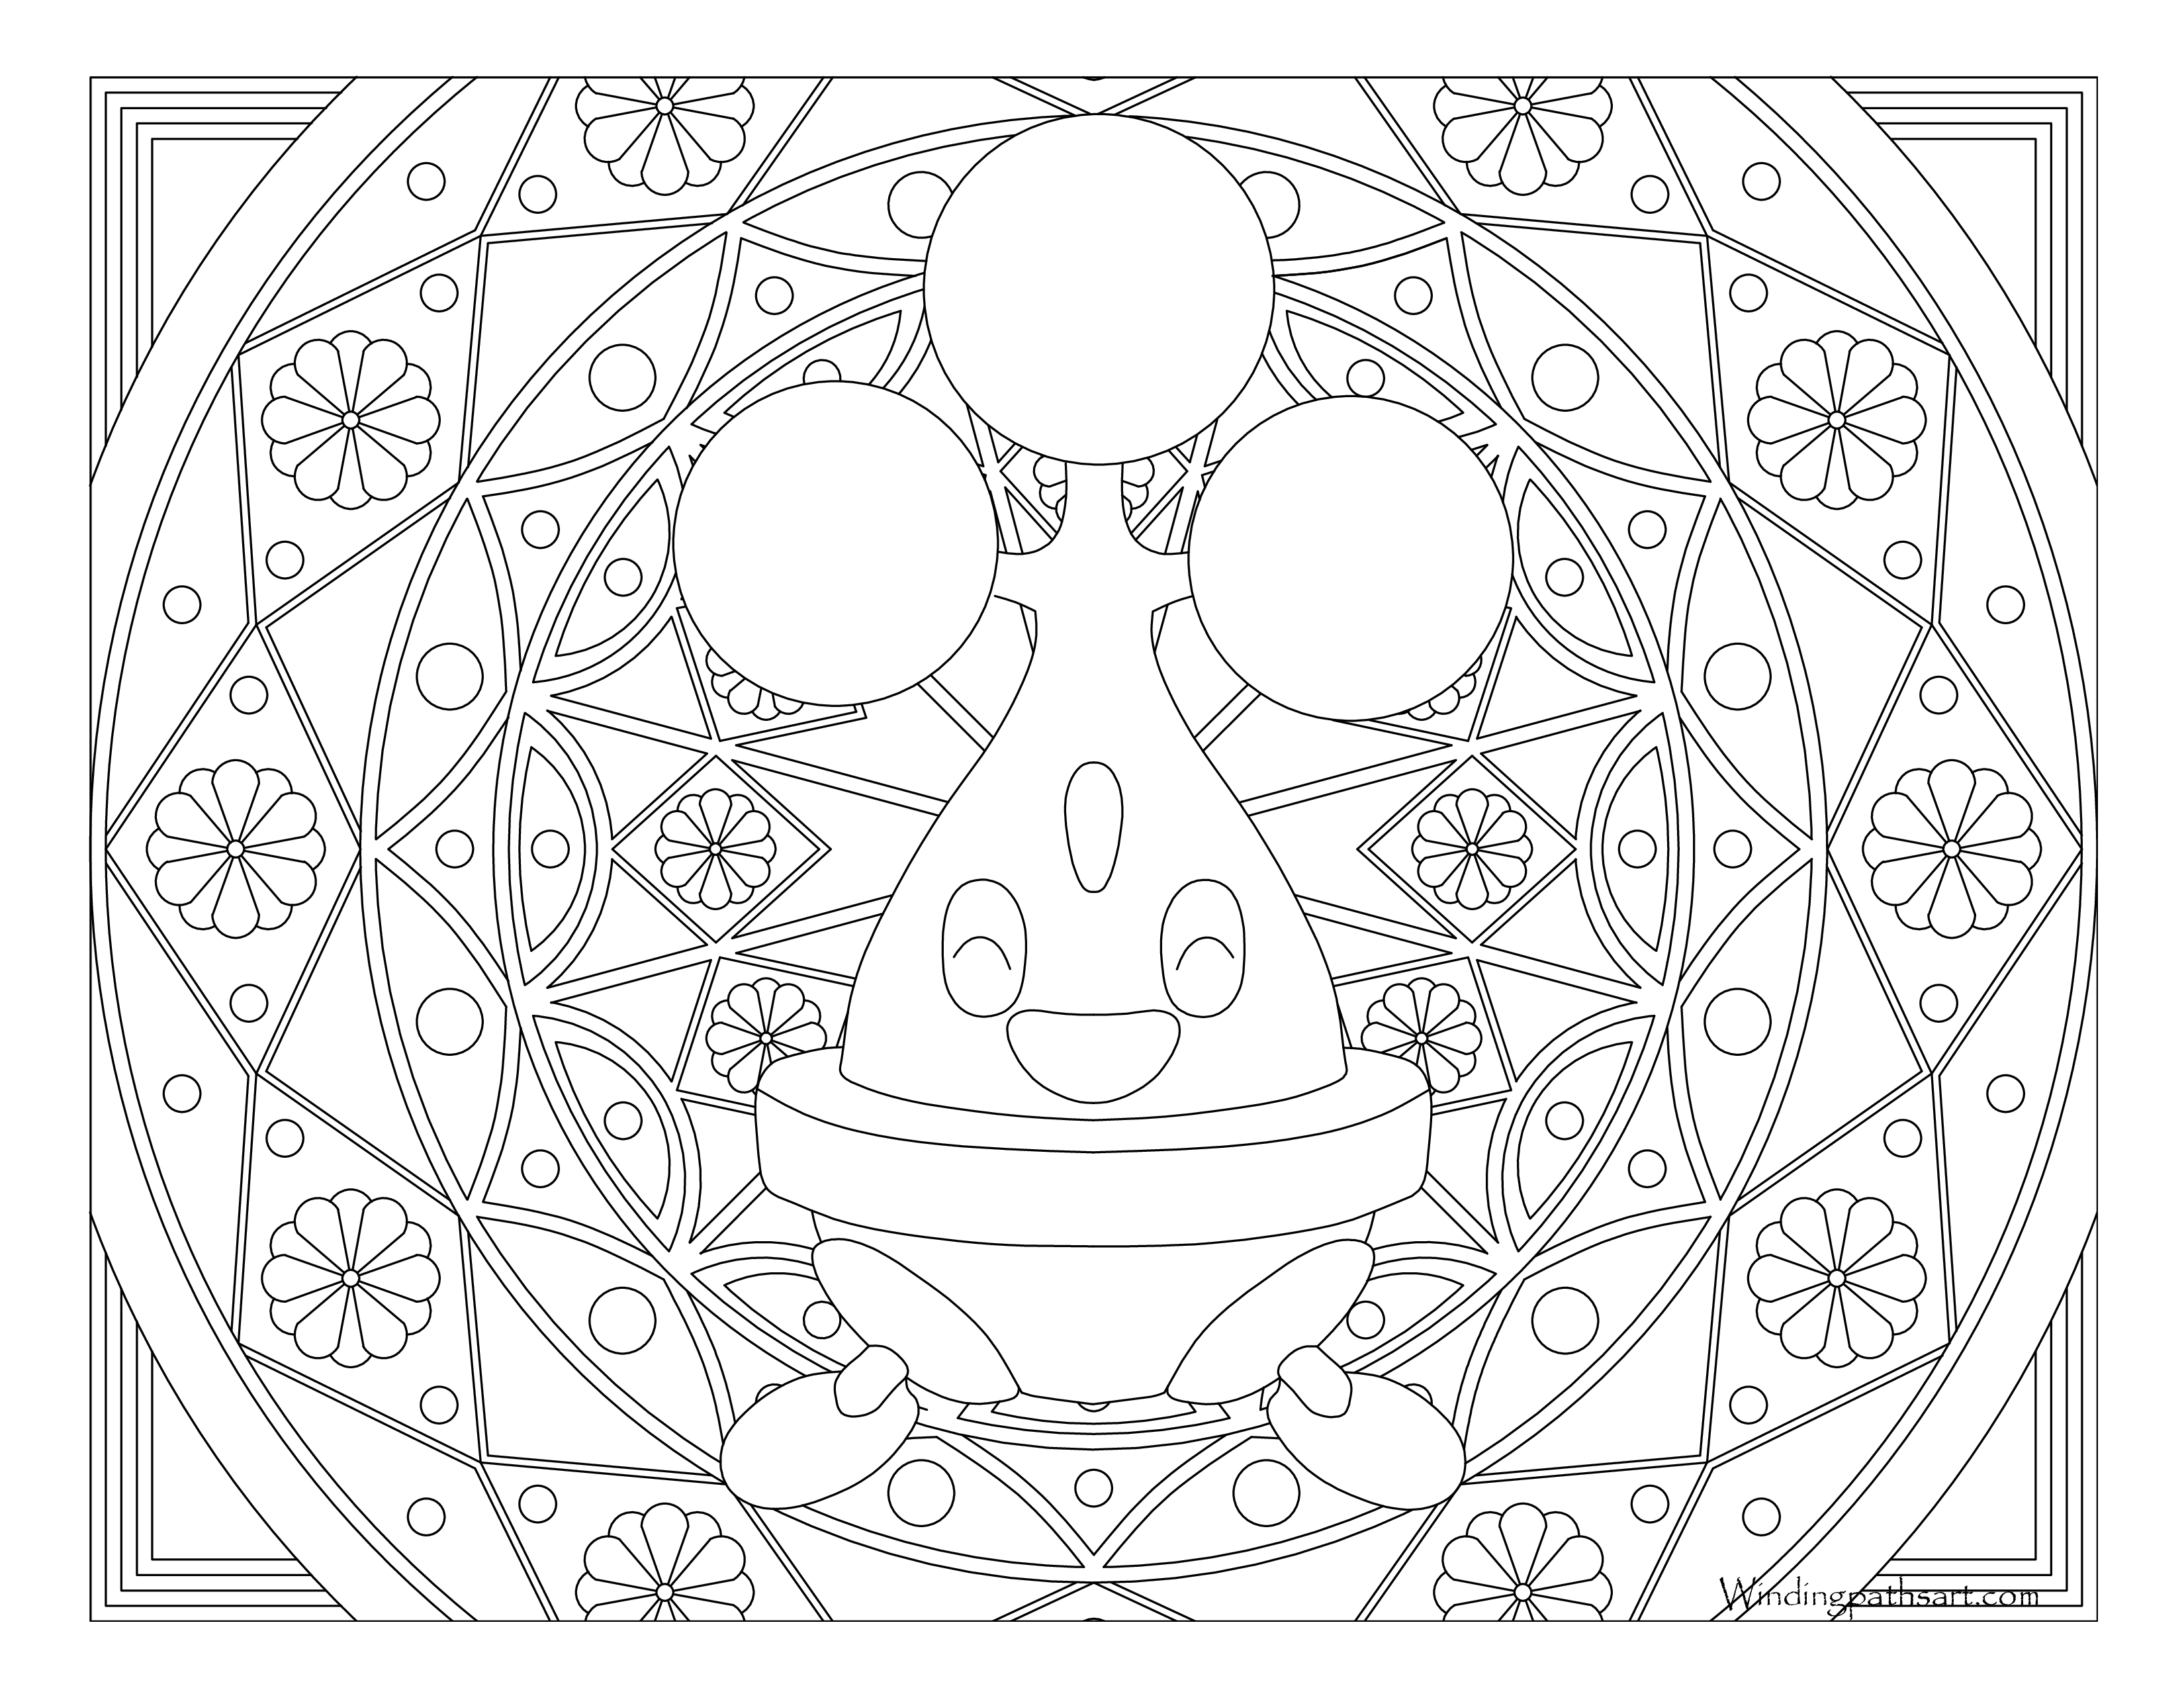 Dragoart Drawing Transparent Png Clipart Free Download Ywd